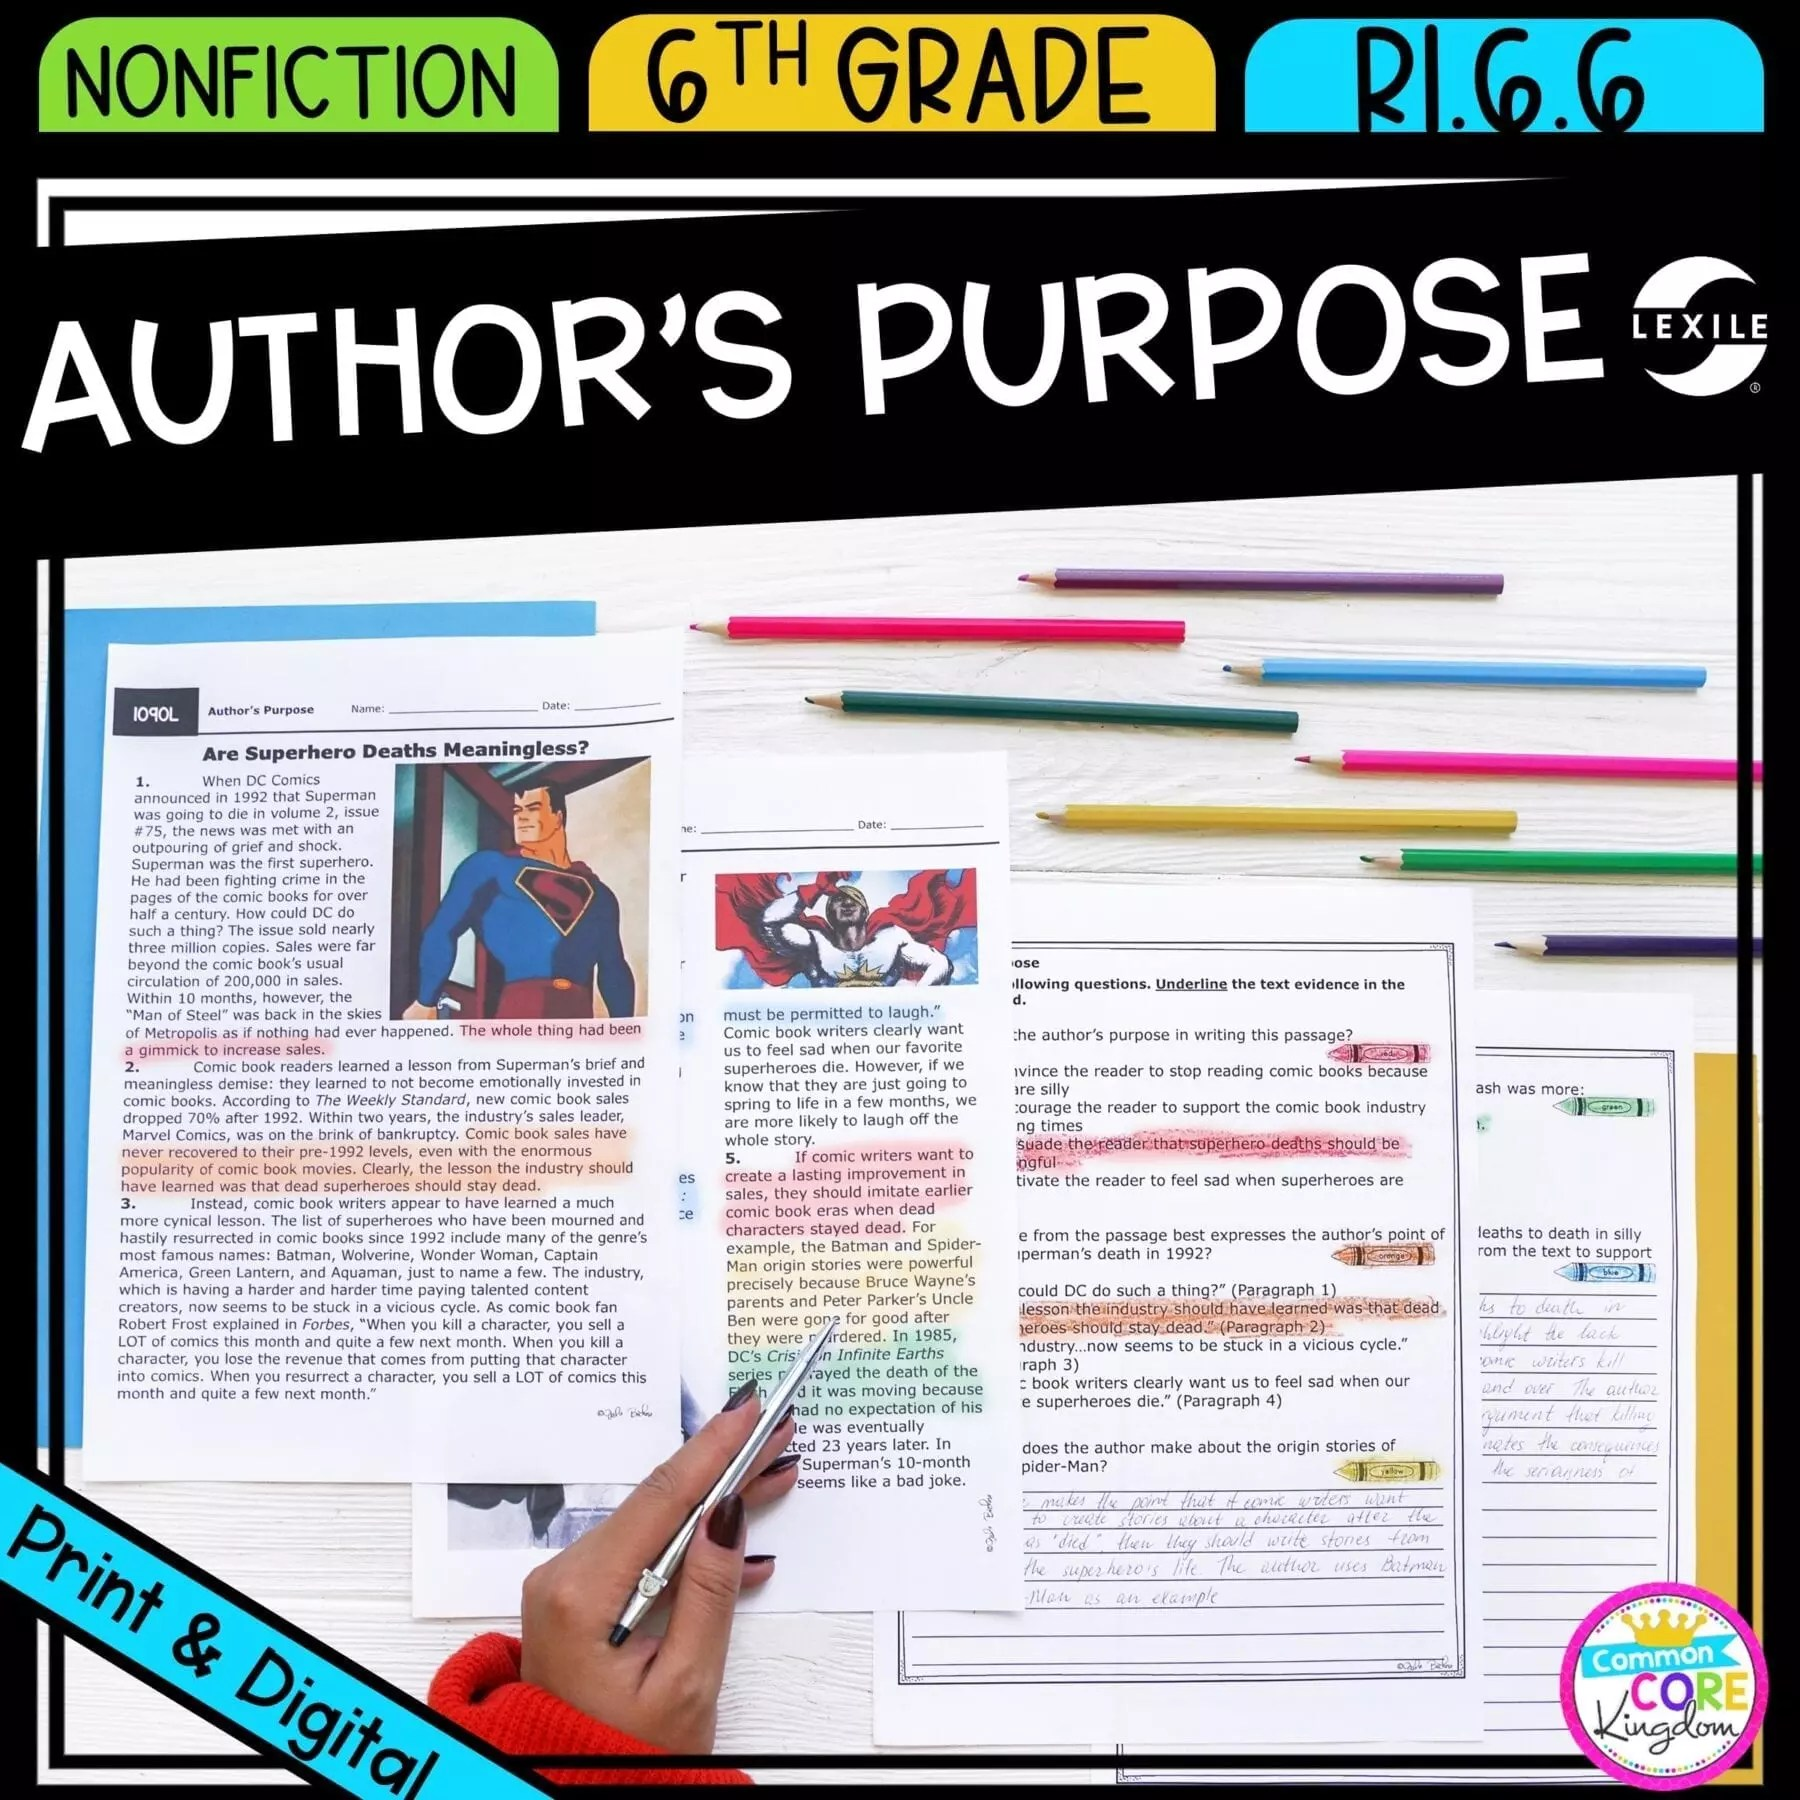 medium resolution of Author's Purpose 6th Grade RI.6.6   Common Core Kingdom